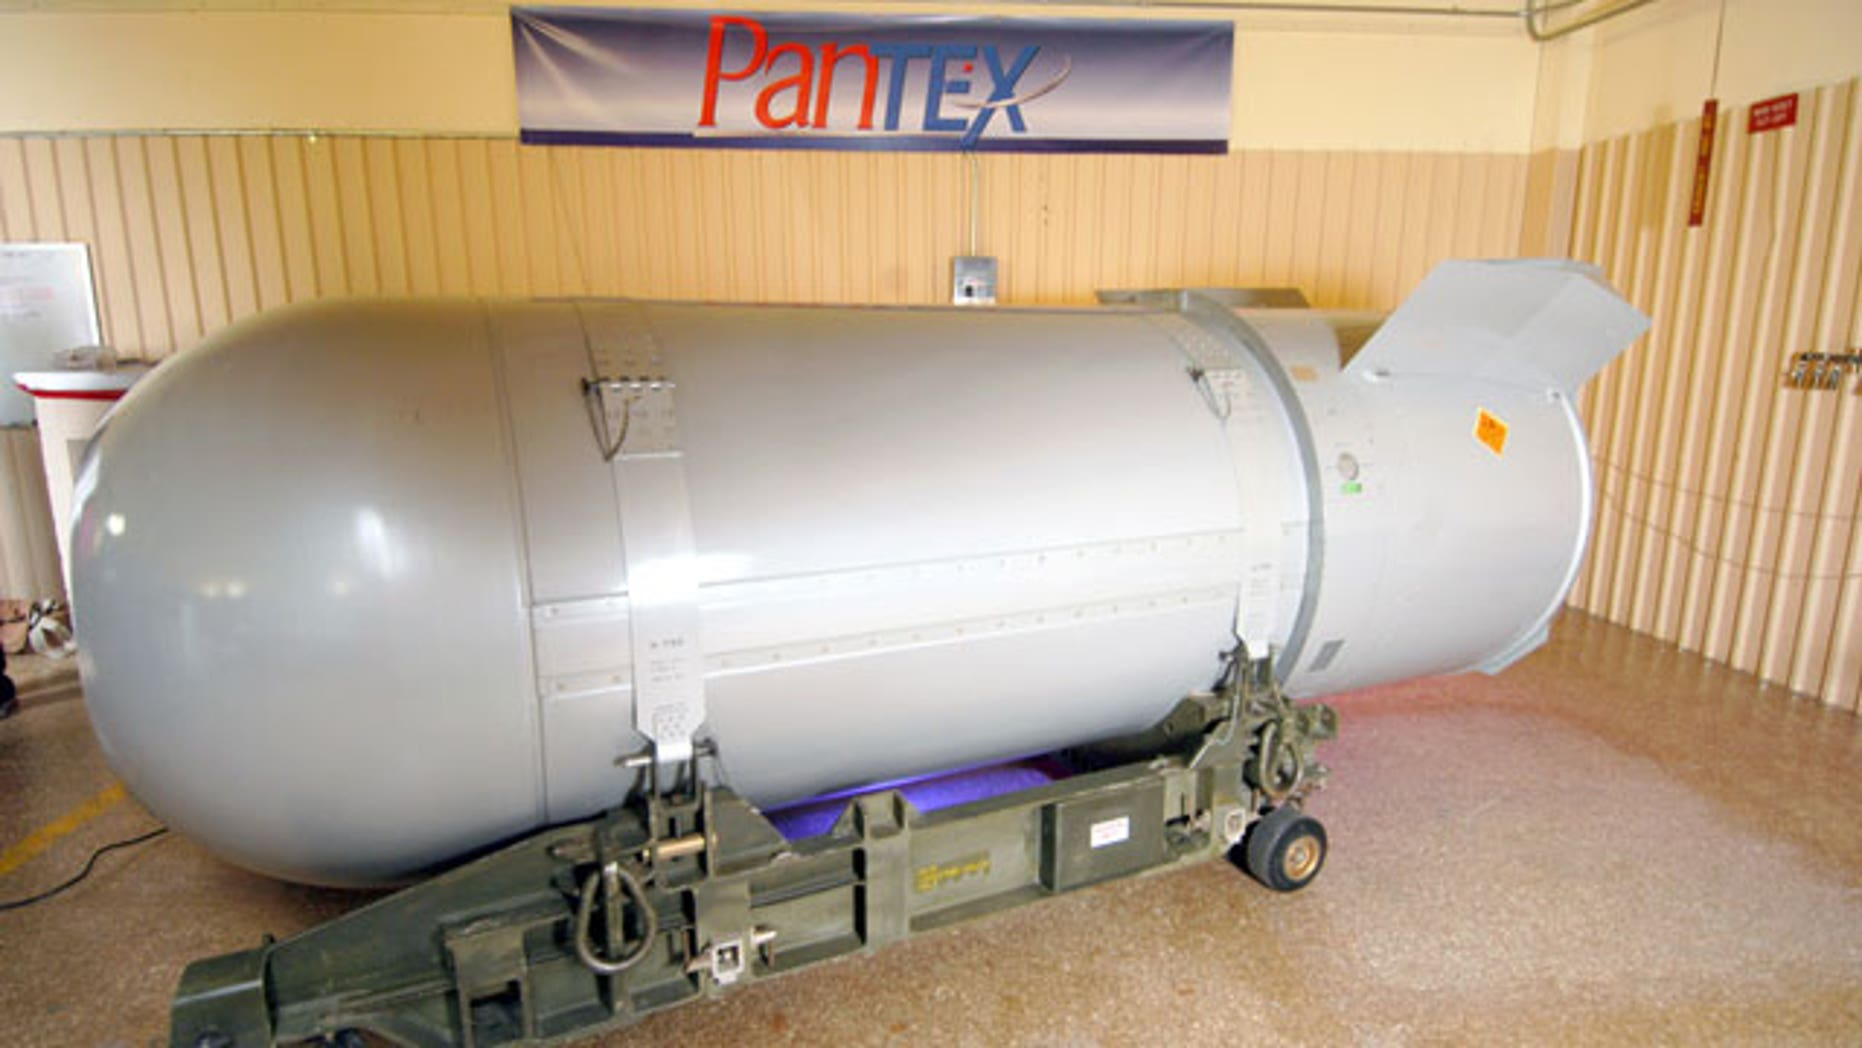 This undated handout photo provided by the National Nuclear Security Administration shows the United States' last B53 nuclear bomb. The 10,000-pound bomb is scheduled to be dismantled Tuesday, Oct. 25, 2011 at the Pantex Plant just outside Amarillo, Texas.